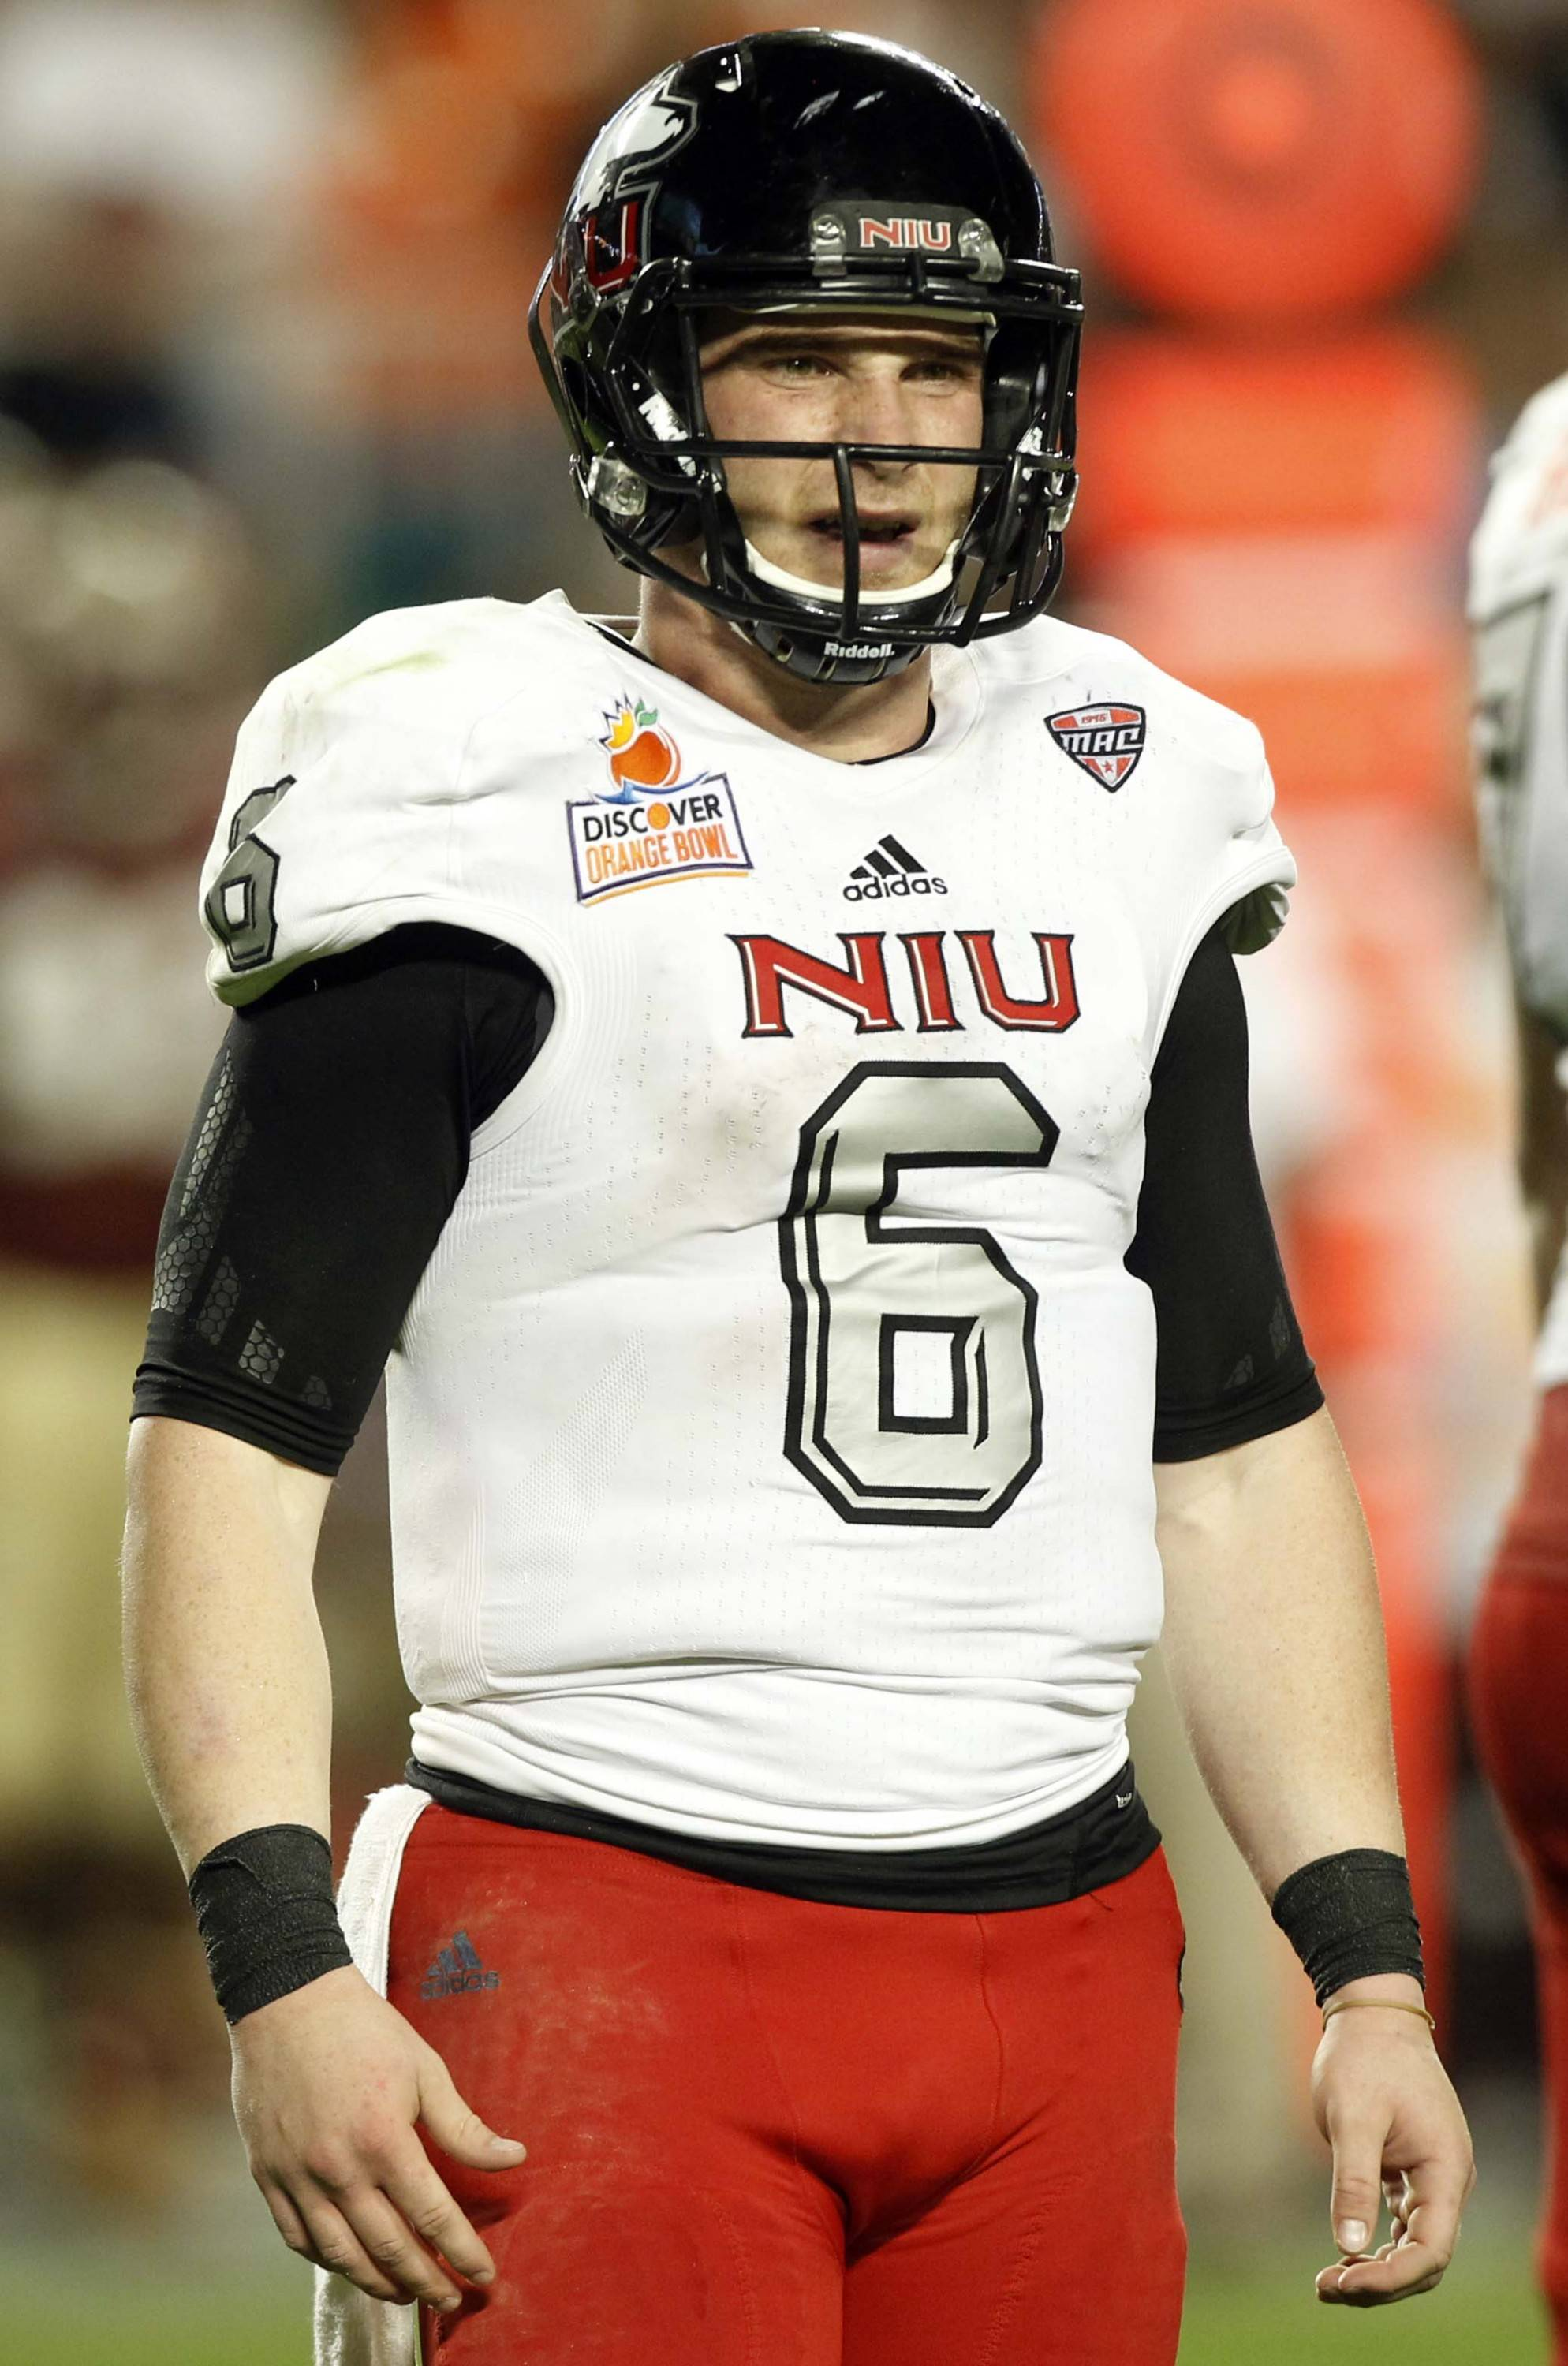 Northern Illinois quarterback Jordan Lynch (6) reacts after a sack during the second half of the Orange Bowl NCAA college football game against Florida State, early Wednesday, Jan. 2, 2013, in Miami.  Florida State defeated Northern Illinois 31-10.(AP Photo/Alan Diaz)